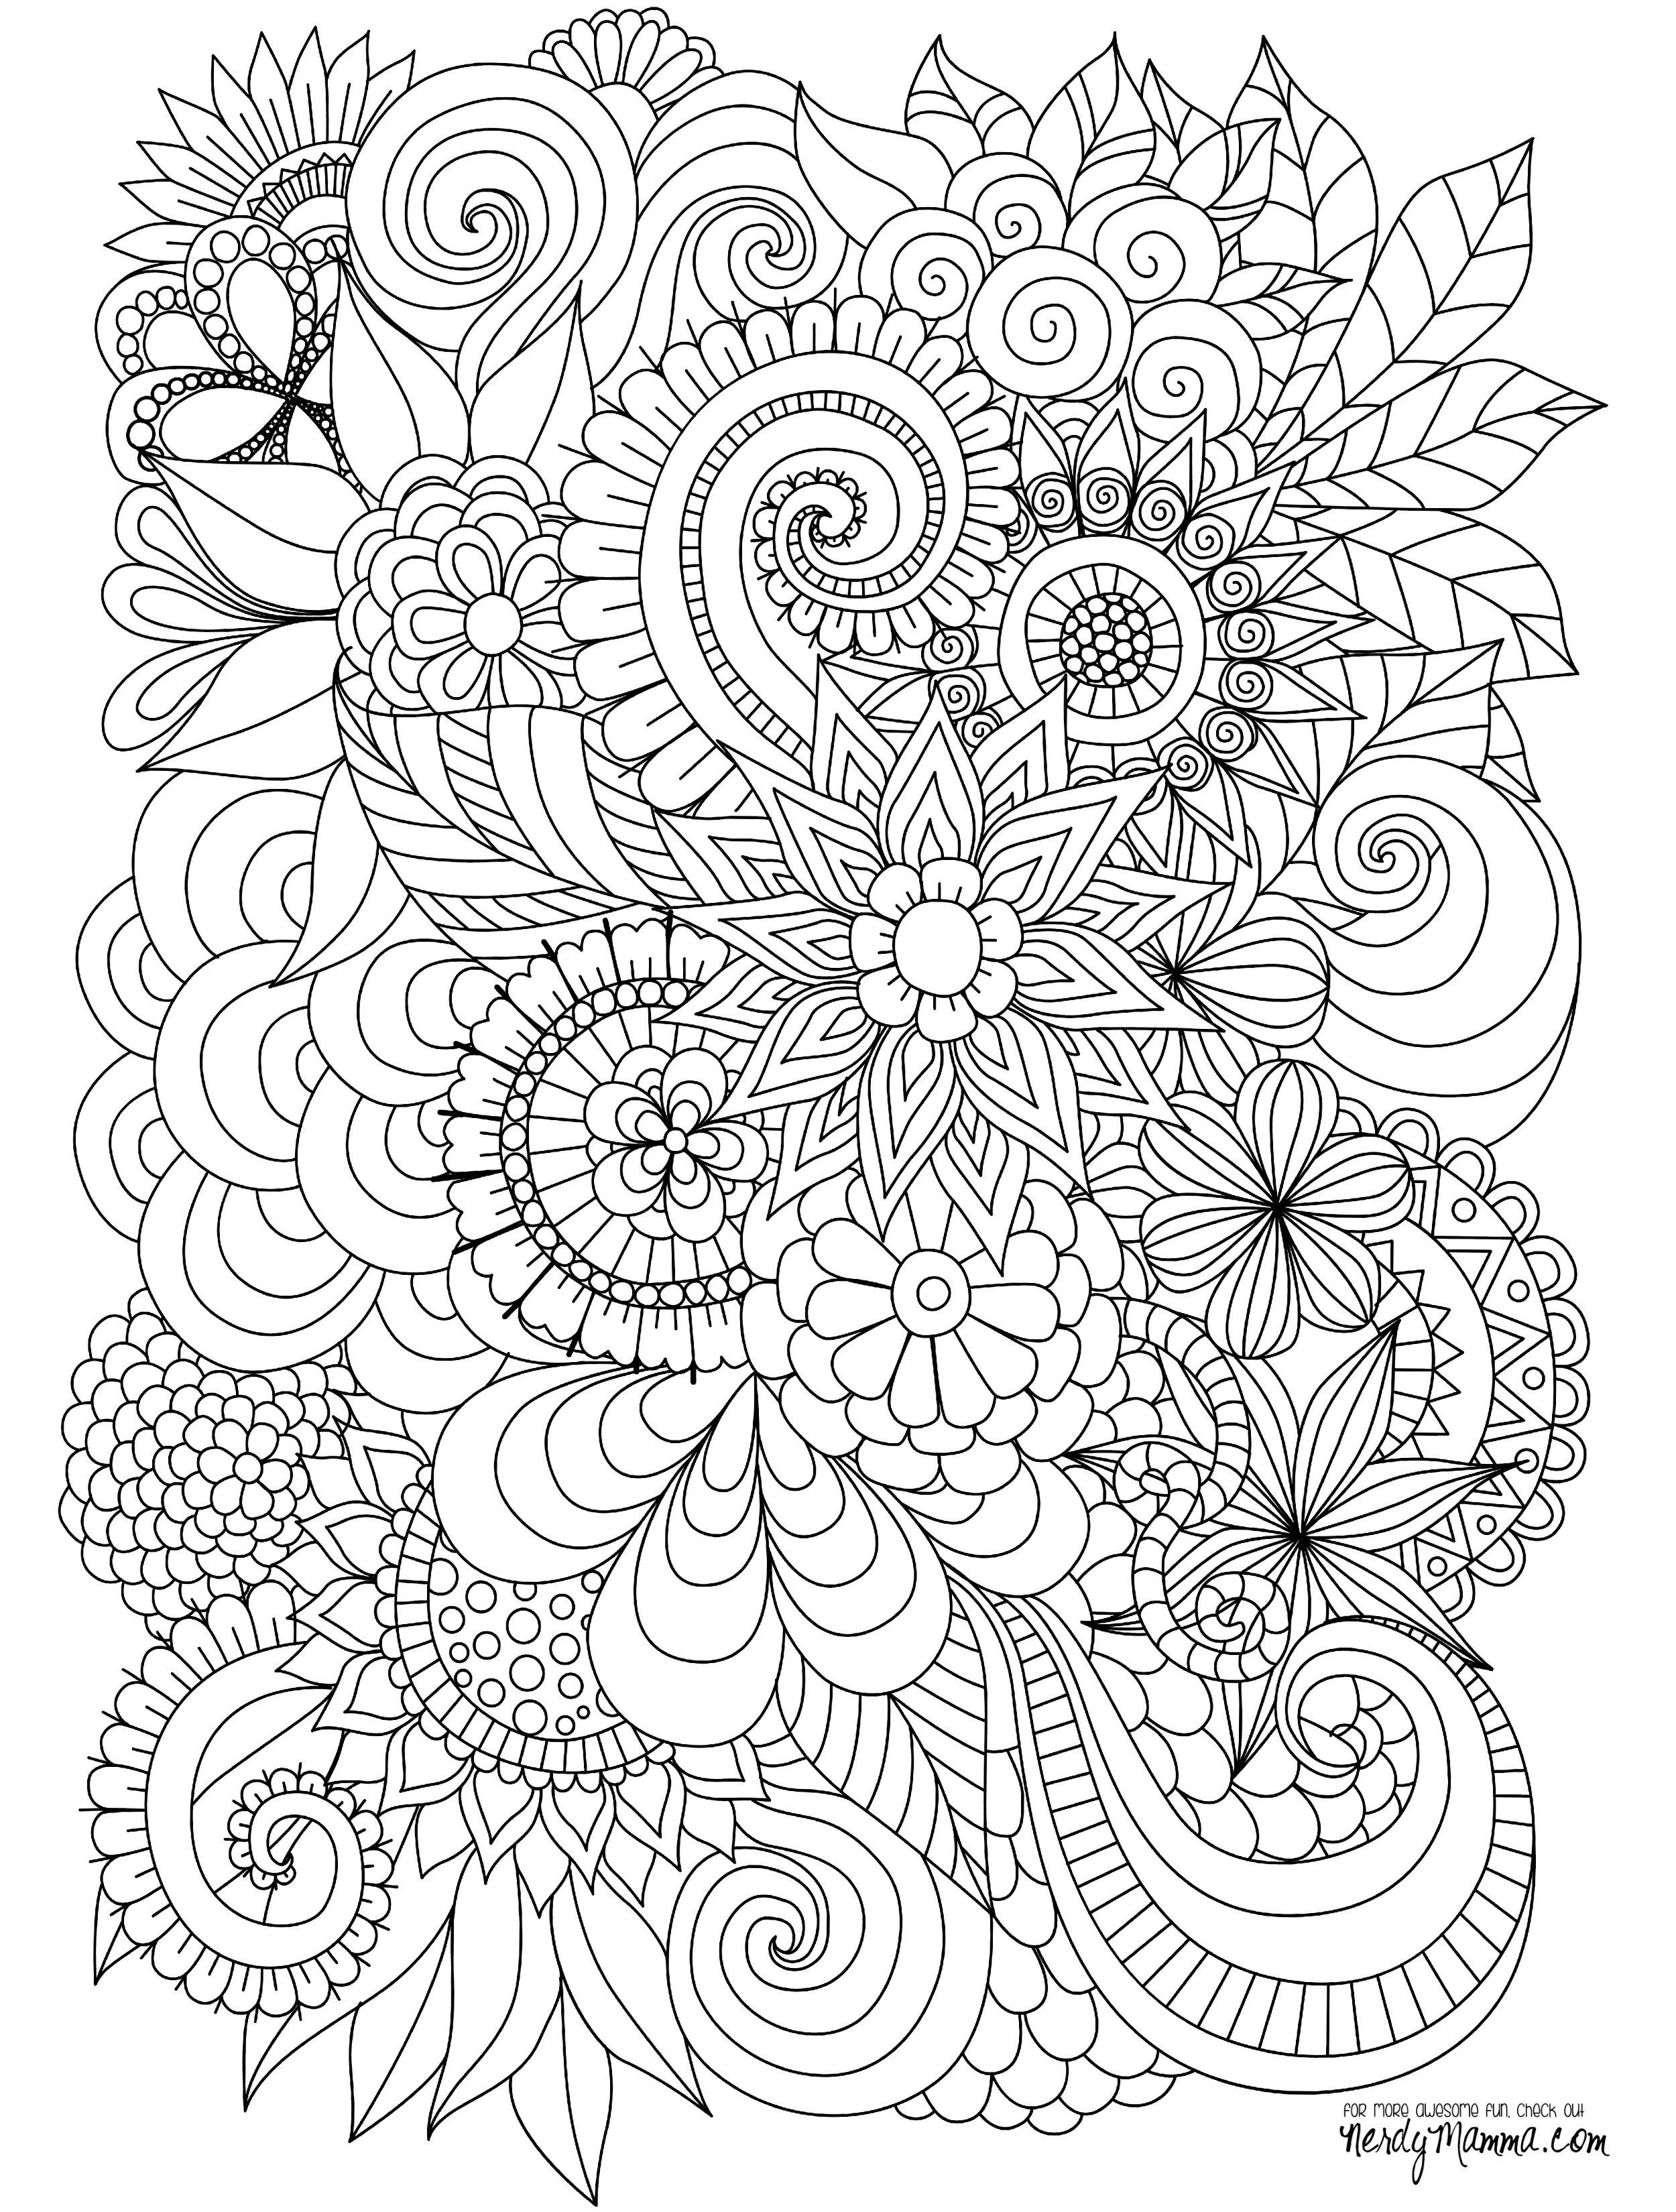 Free coloring pages for young adults - 11 Free Printable Adult Coloring Pages